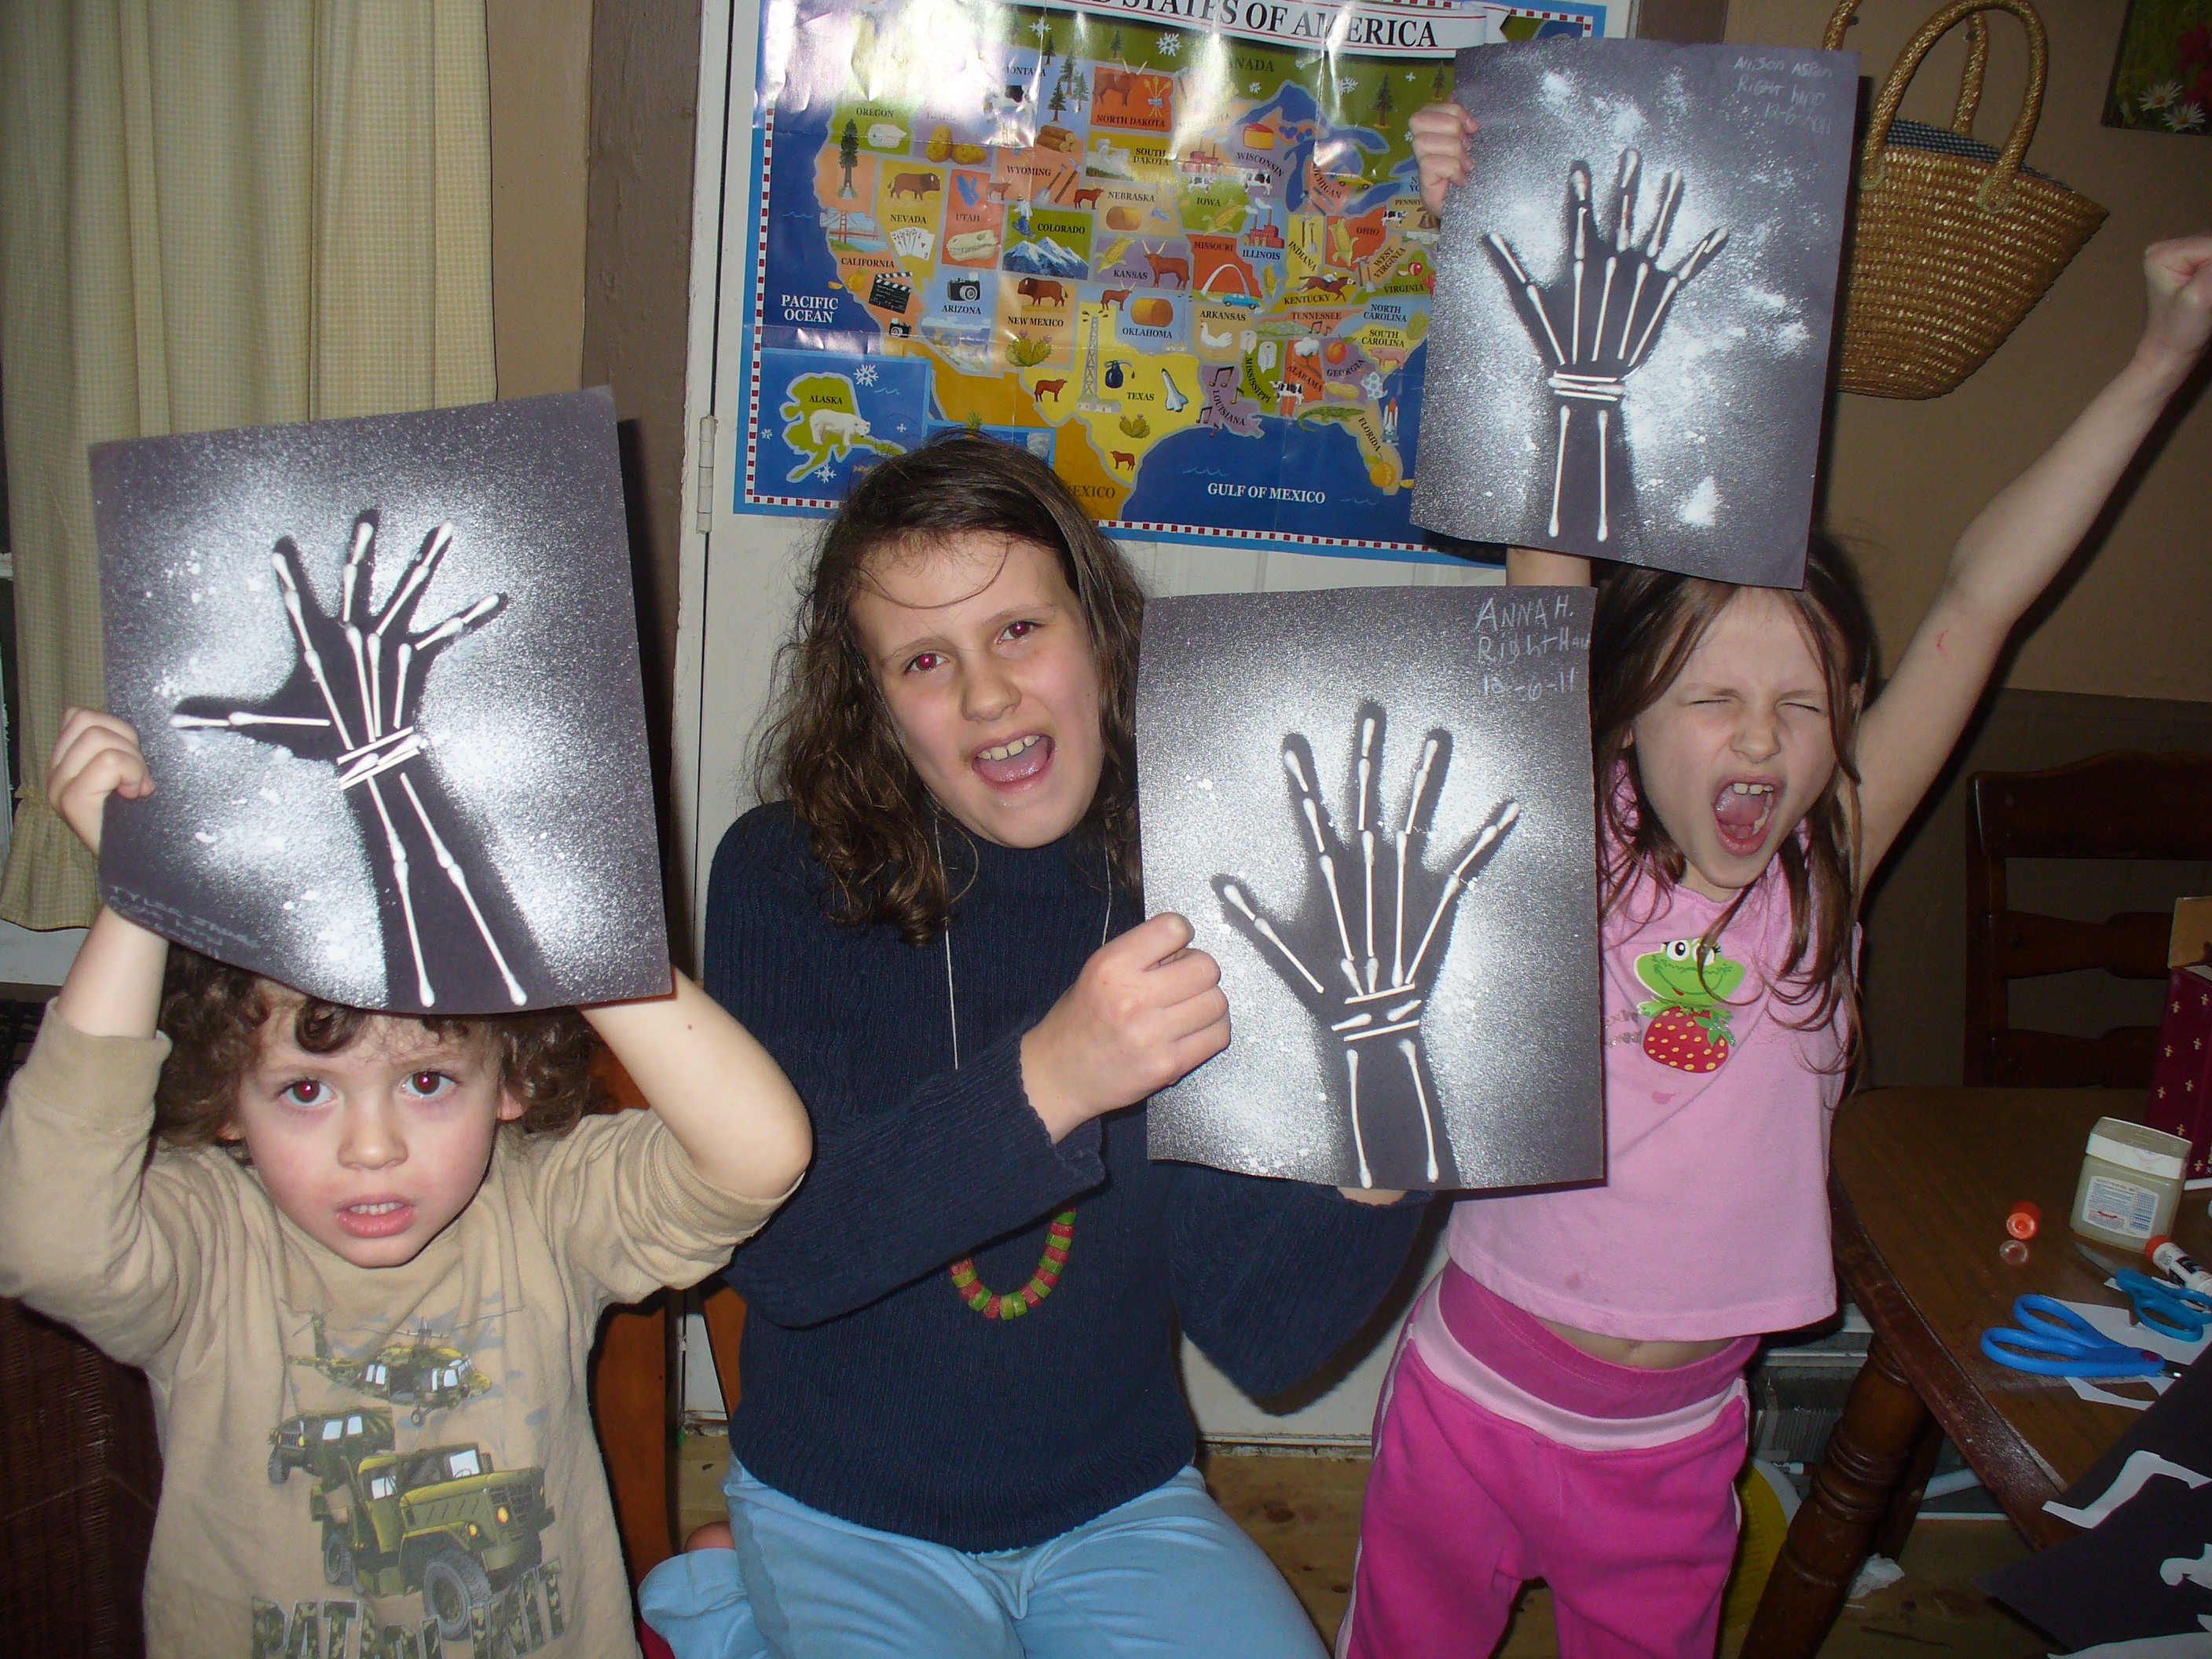 Skeletal System Activities And Crafts